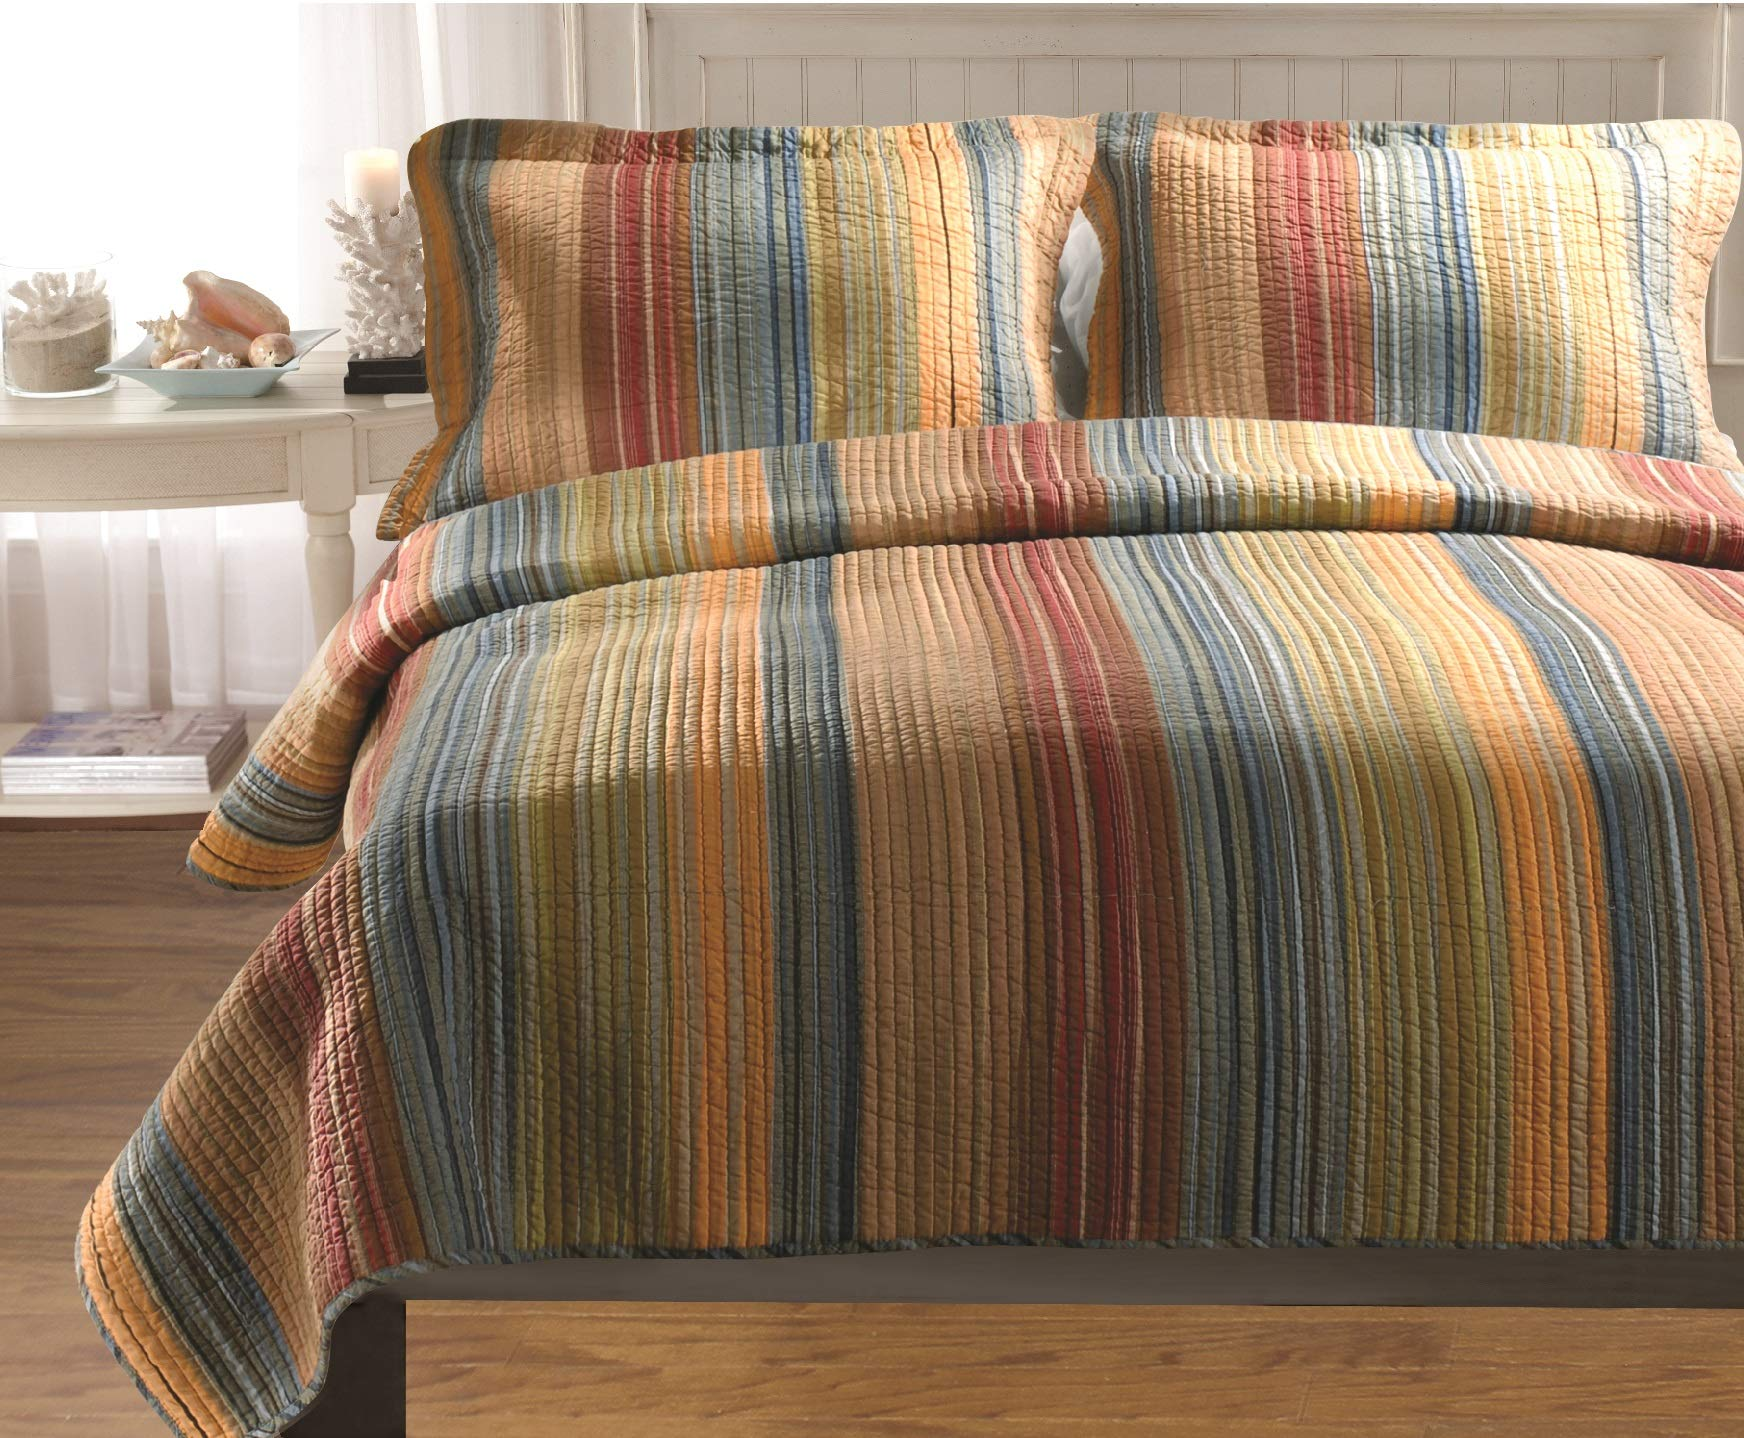 Greenland Home Katy Twin Quilt Set product image